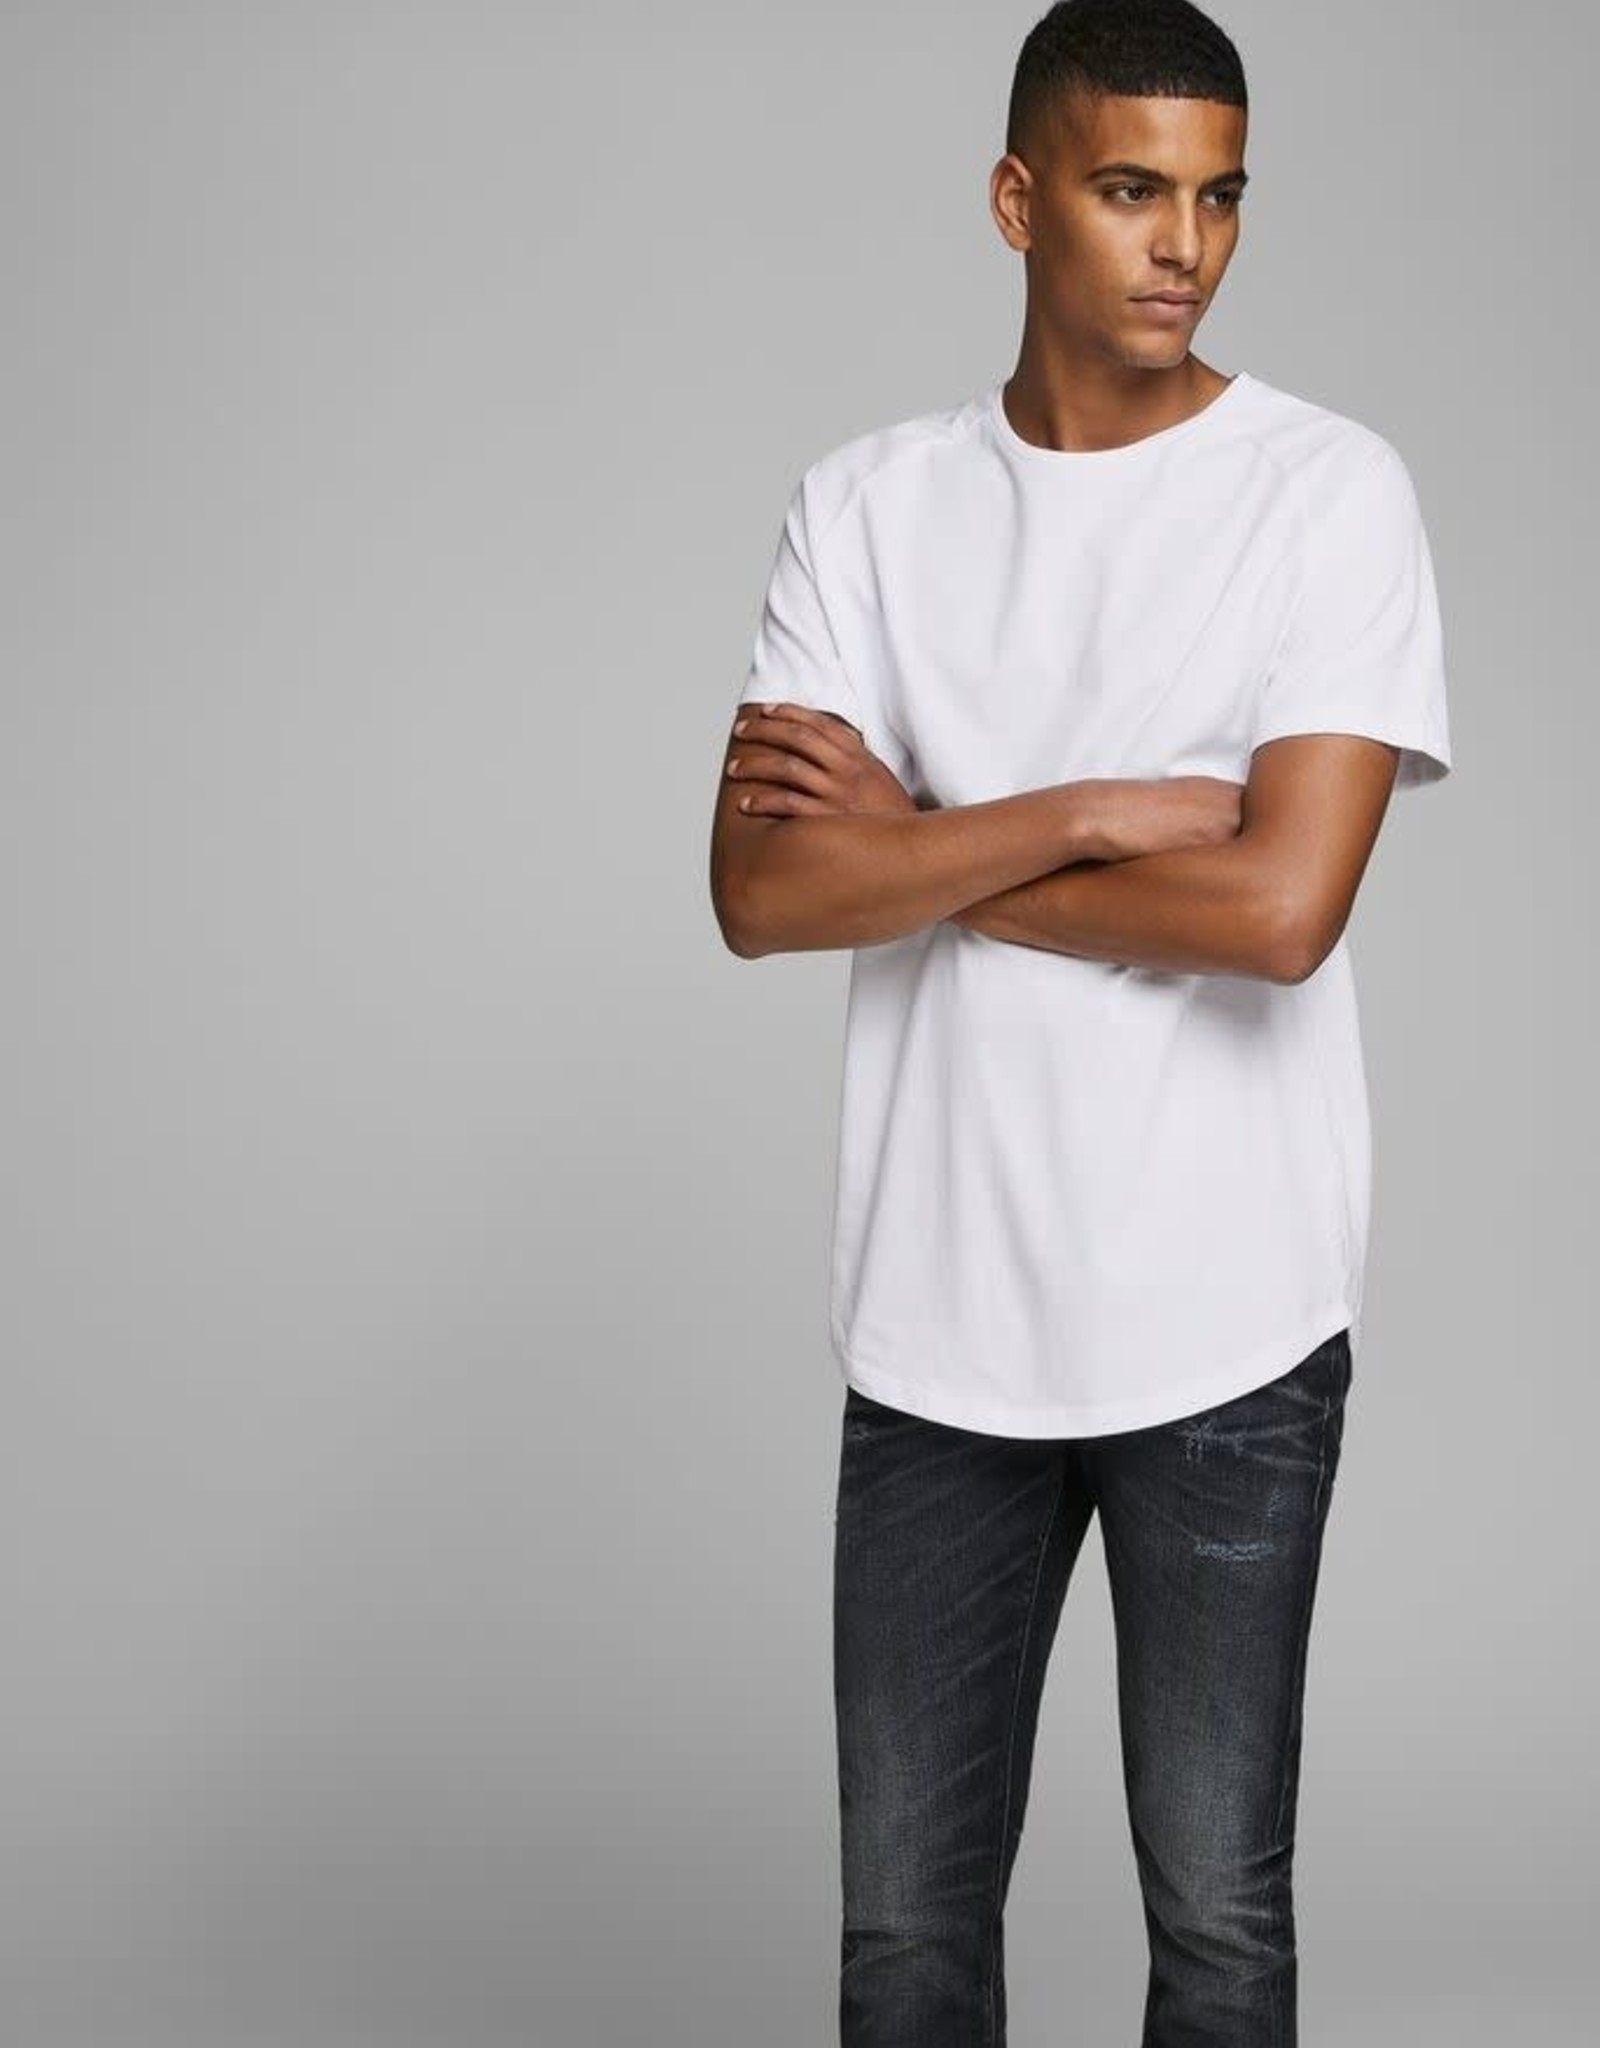 JACK & JONES ORGANIC COTTON CURVED HEM T-SHIRT, White